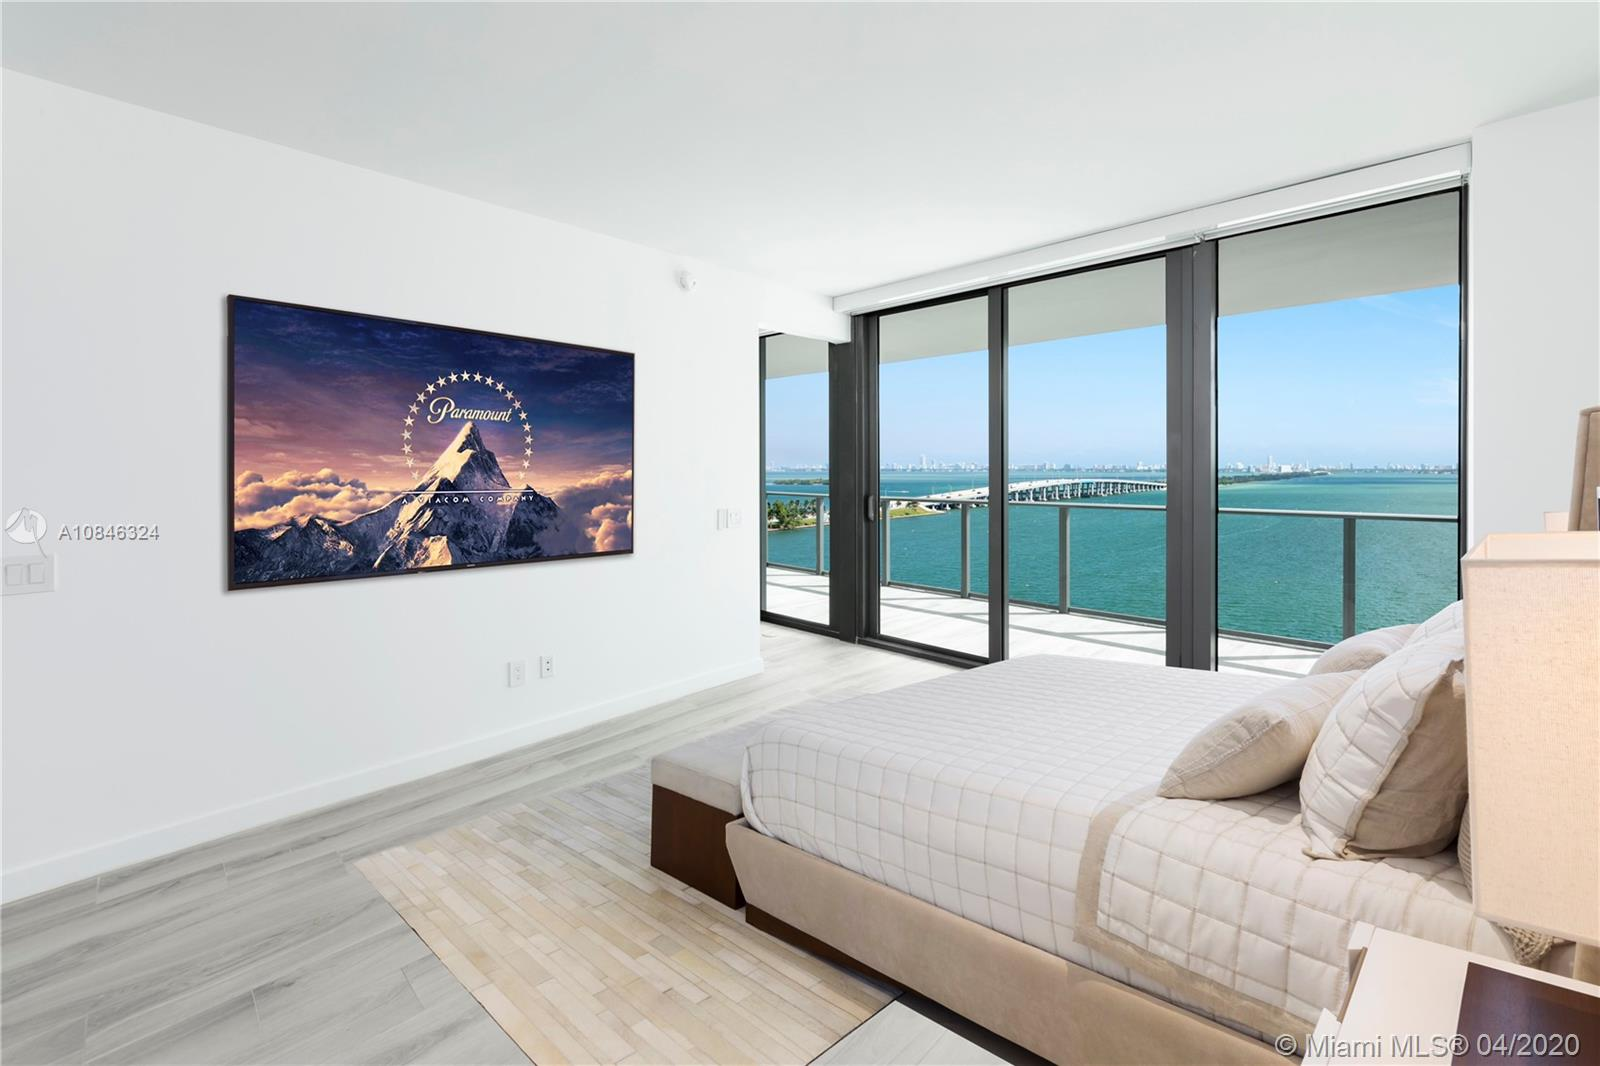 3131 NE 7th Ave # 1104, Miami, Florida 33137, 3 Bedrooms Bedrooms, ,4 BathroomsBathrooms,Residential,For Sale,3131 NE 7th Ave # 1104,A10846324